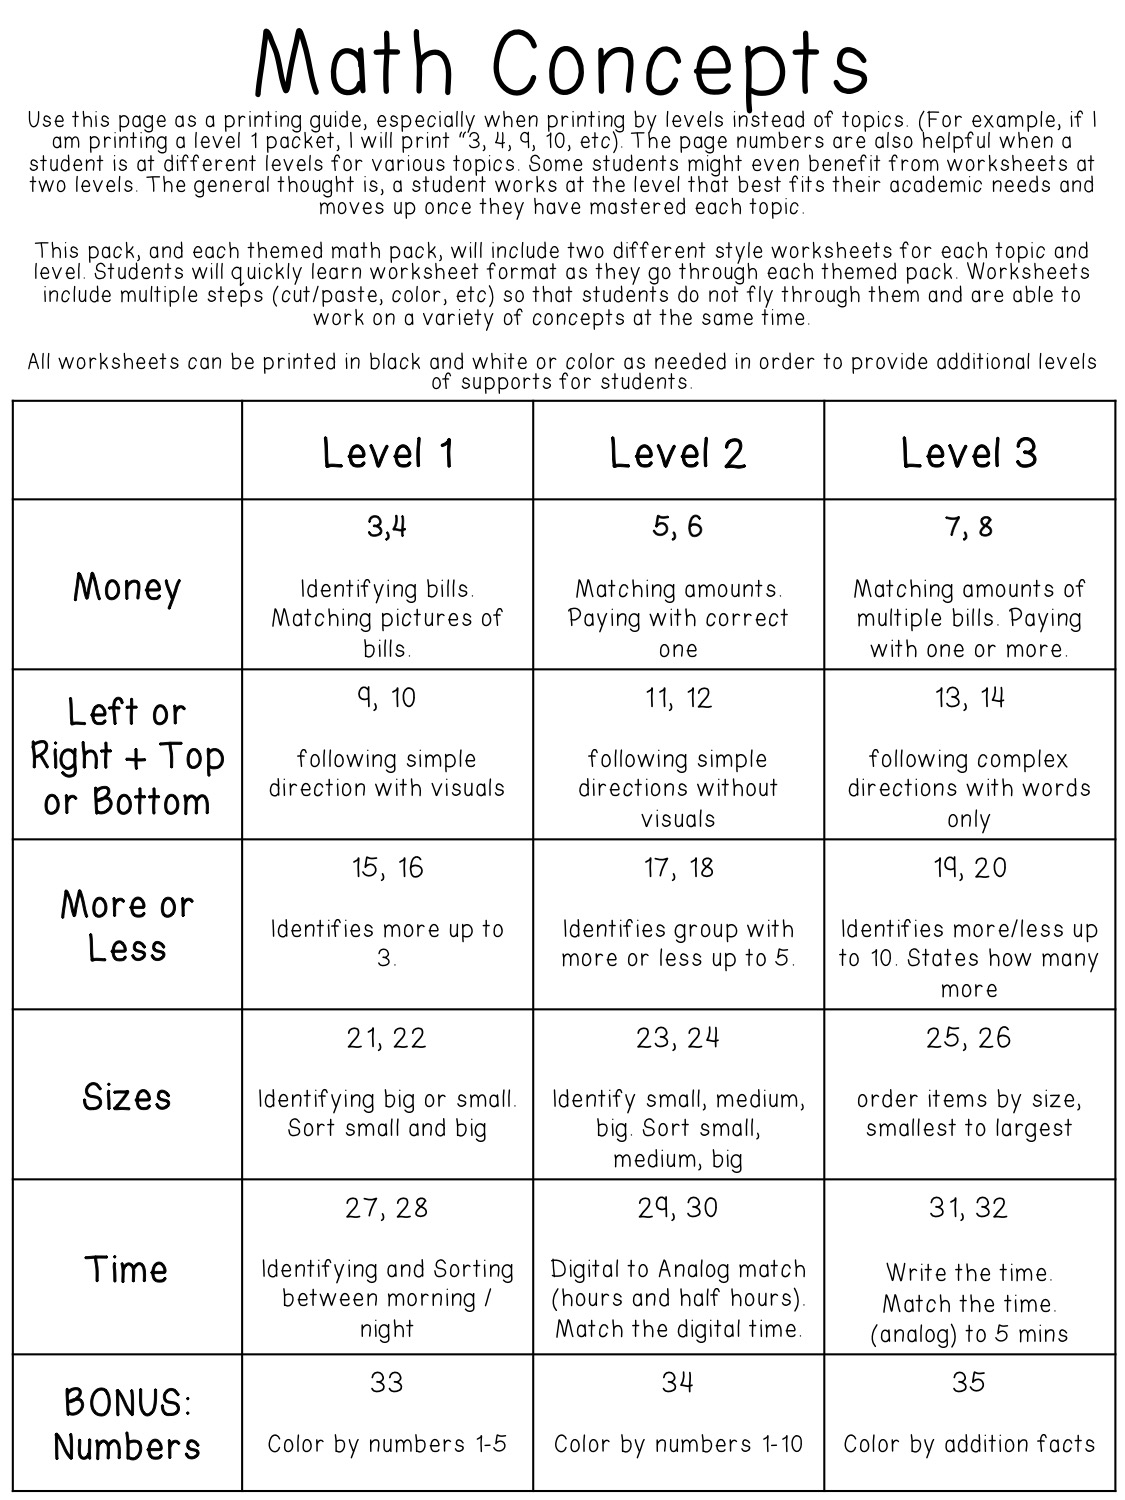 Worksheet Life Skills Math Worksheets breezy special ed math life skill worksheets thanksgiving themed in my classroom we do a worksheet each day and then activity that corresponds to so are getting han